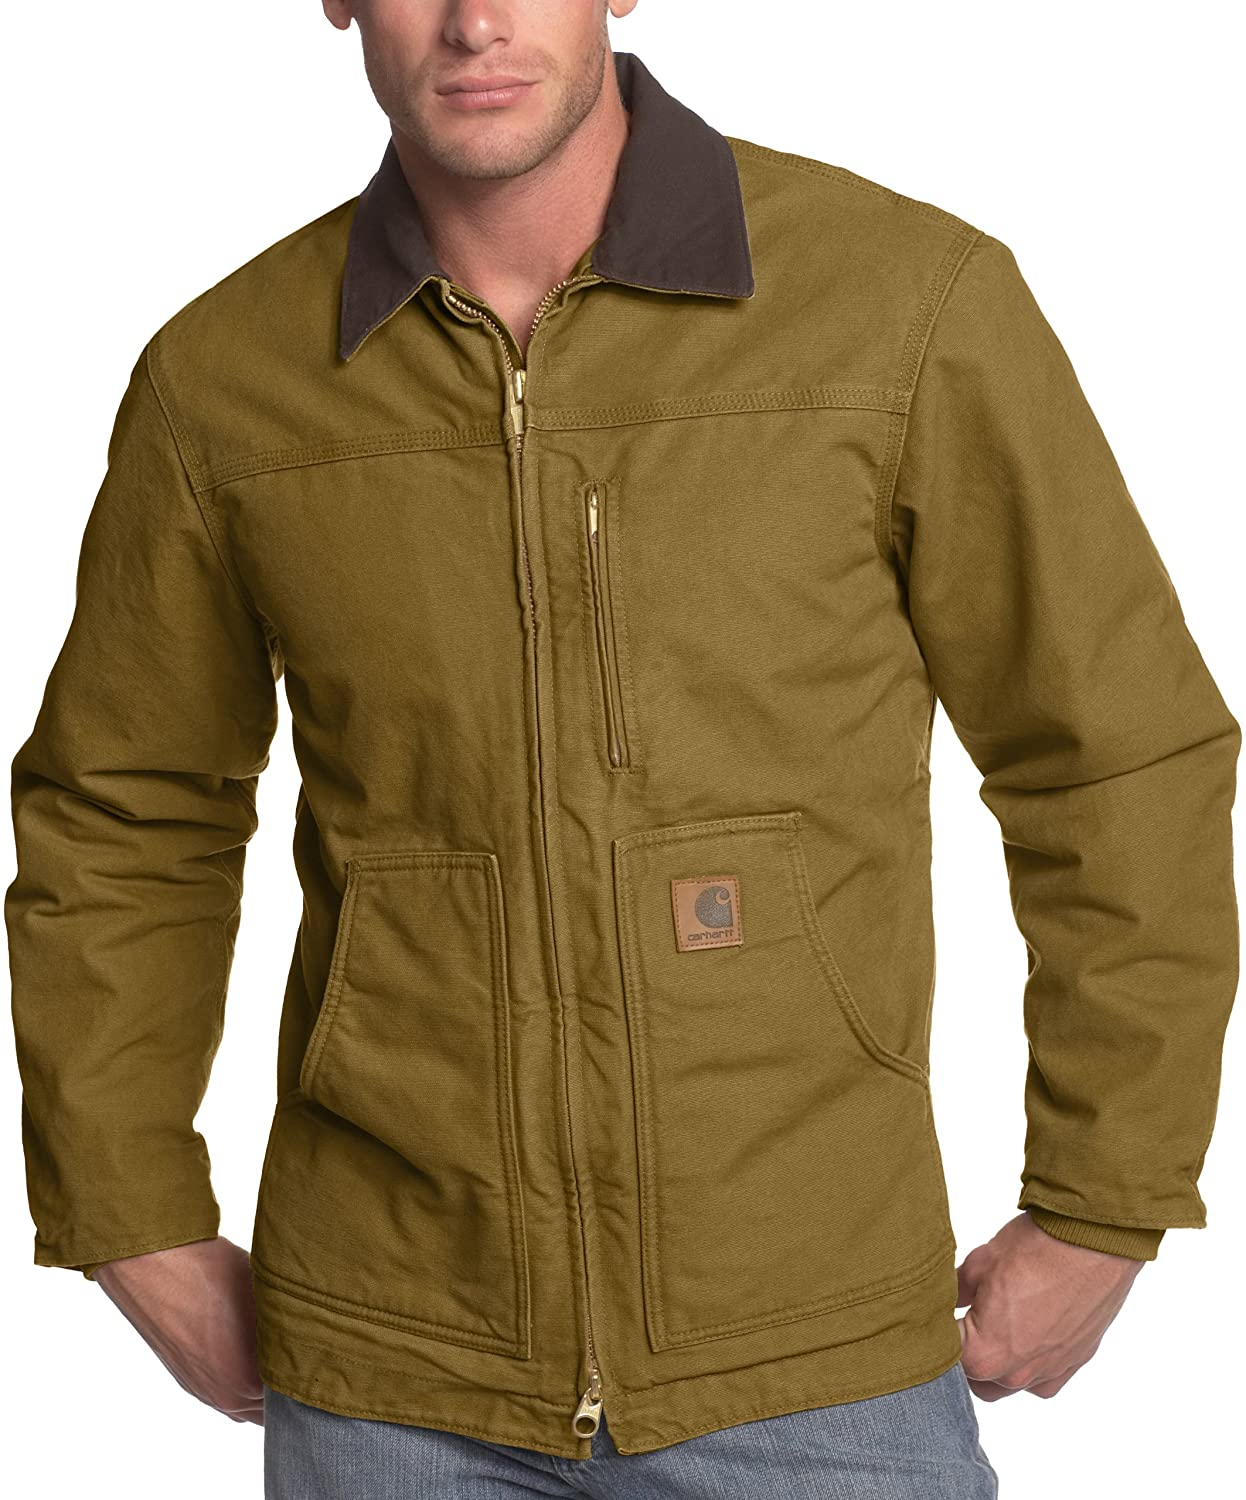 64f9f883d43f Carhartt Men s Ridge Coat Sherpa Lined Sandstone C61 at Amazon Men s ...